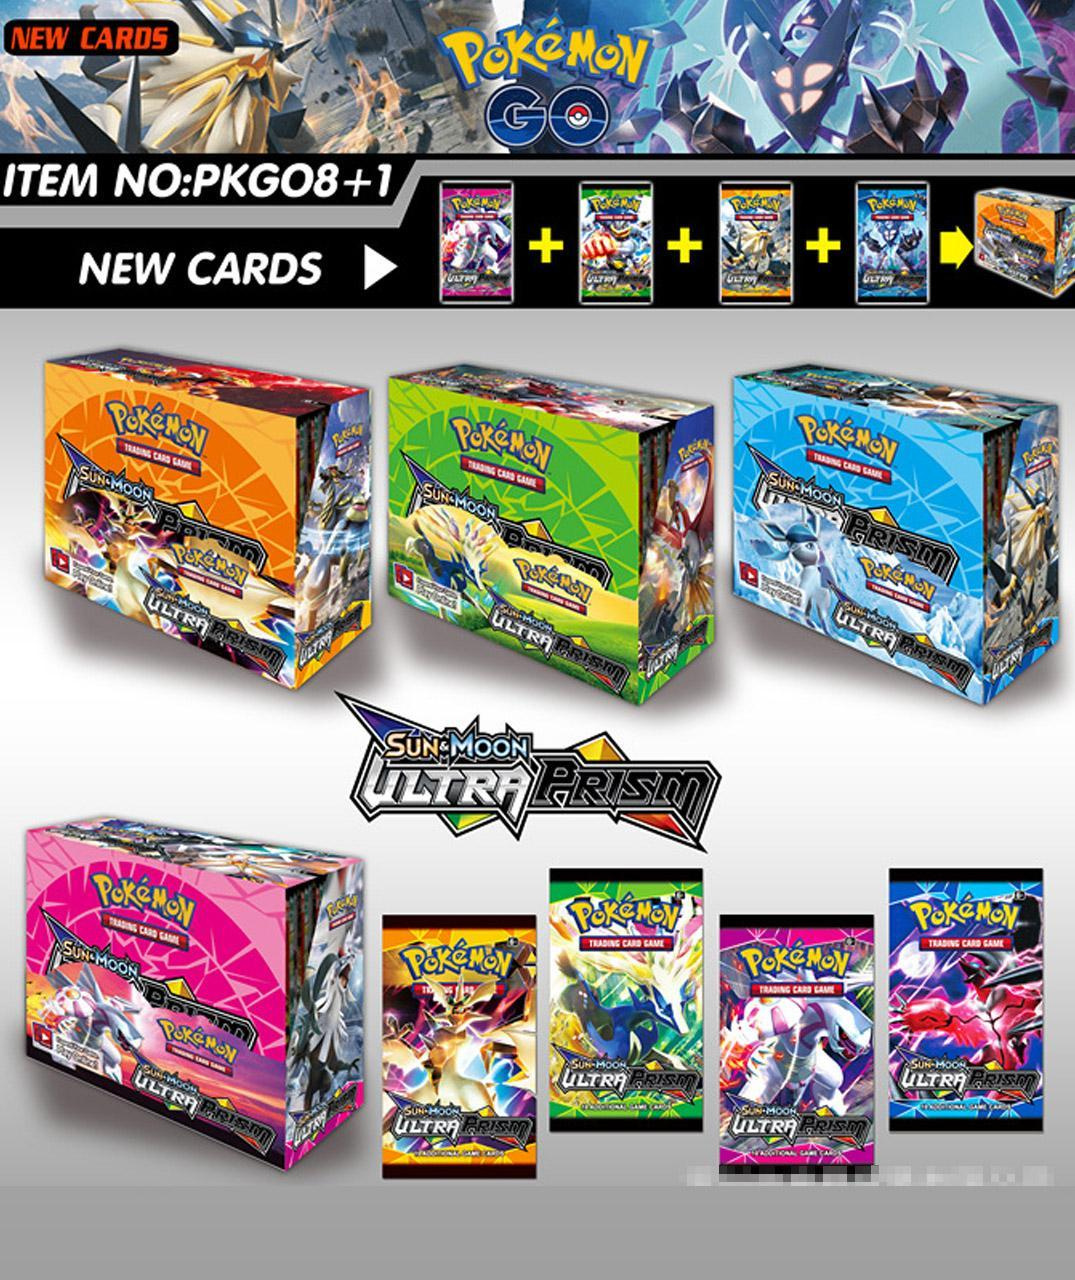 Pokemon Sun and Moon Ultra Prism Electric Pokemon Playing Trading Cards